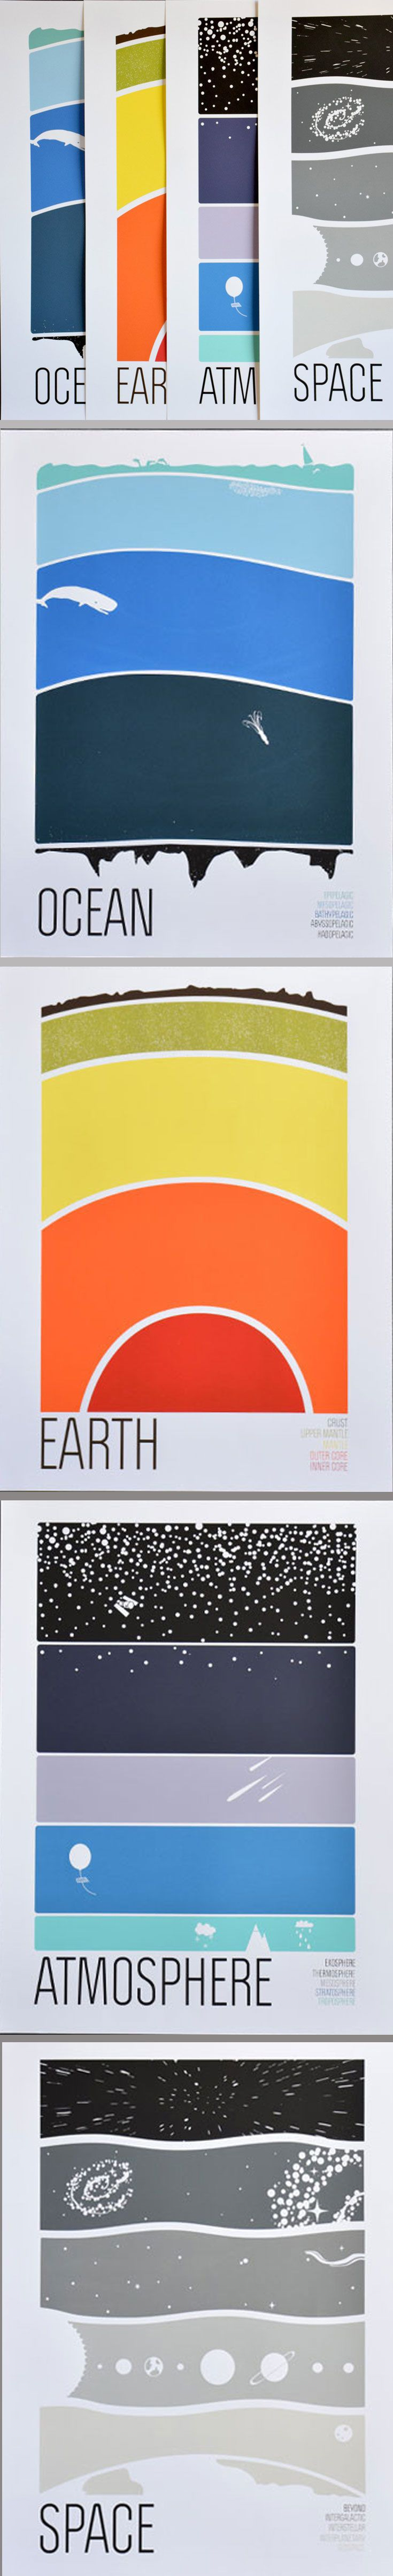 """Earth! And Science! And Art! Hooray! This discounted set includes all four Earth Science prints from Brainstorm: Earth, Atmosphere, Ocean, and Space. Each 5-color screenprint measures 18"""" x 24."""" #colossal #earthscience"""